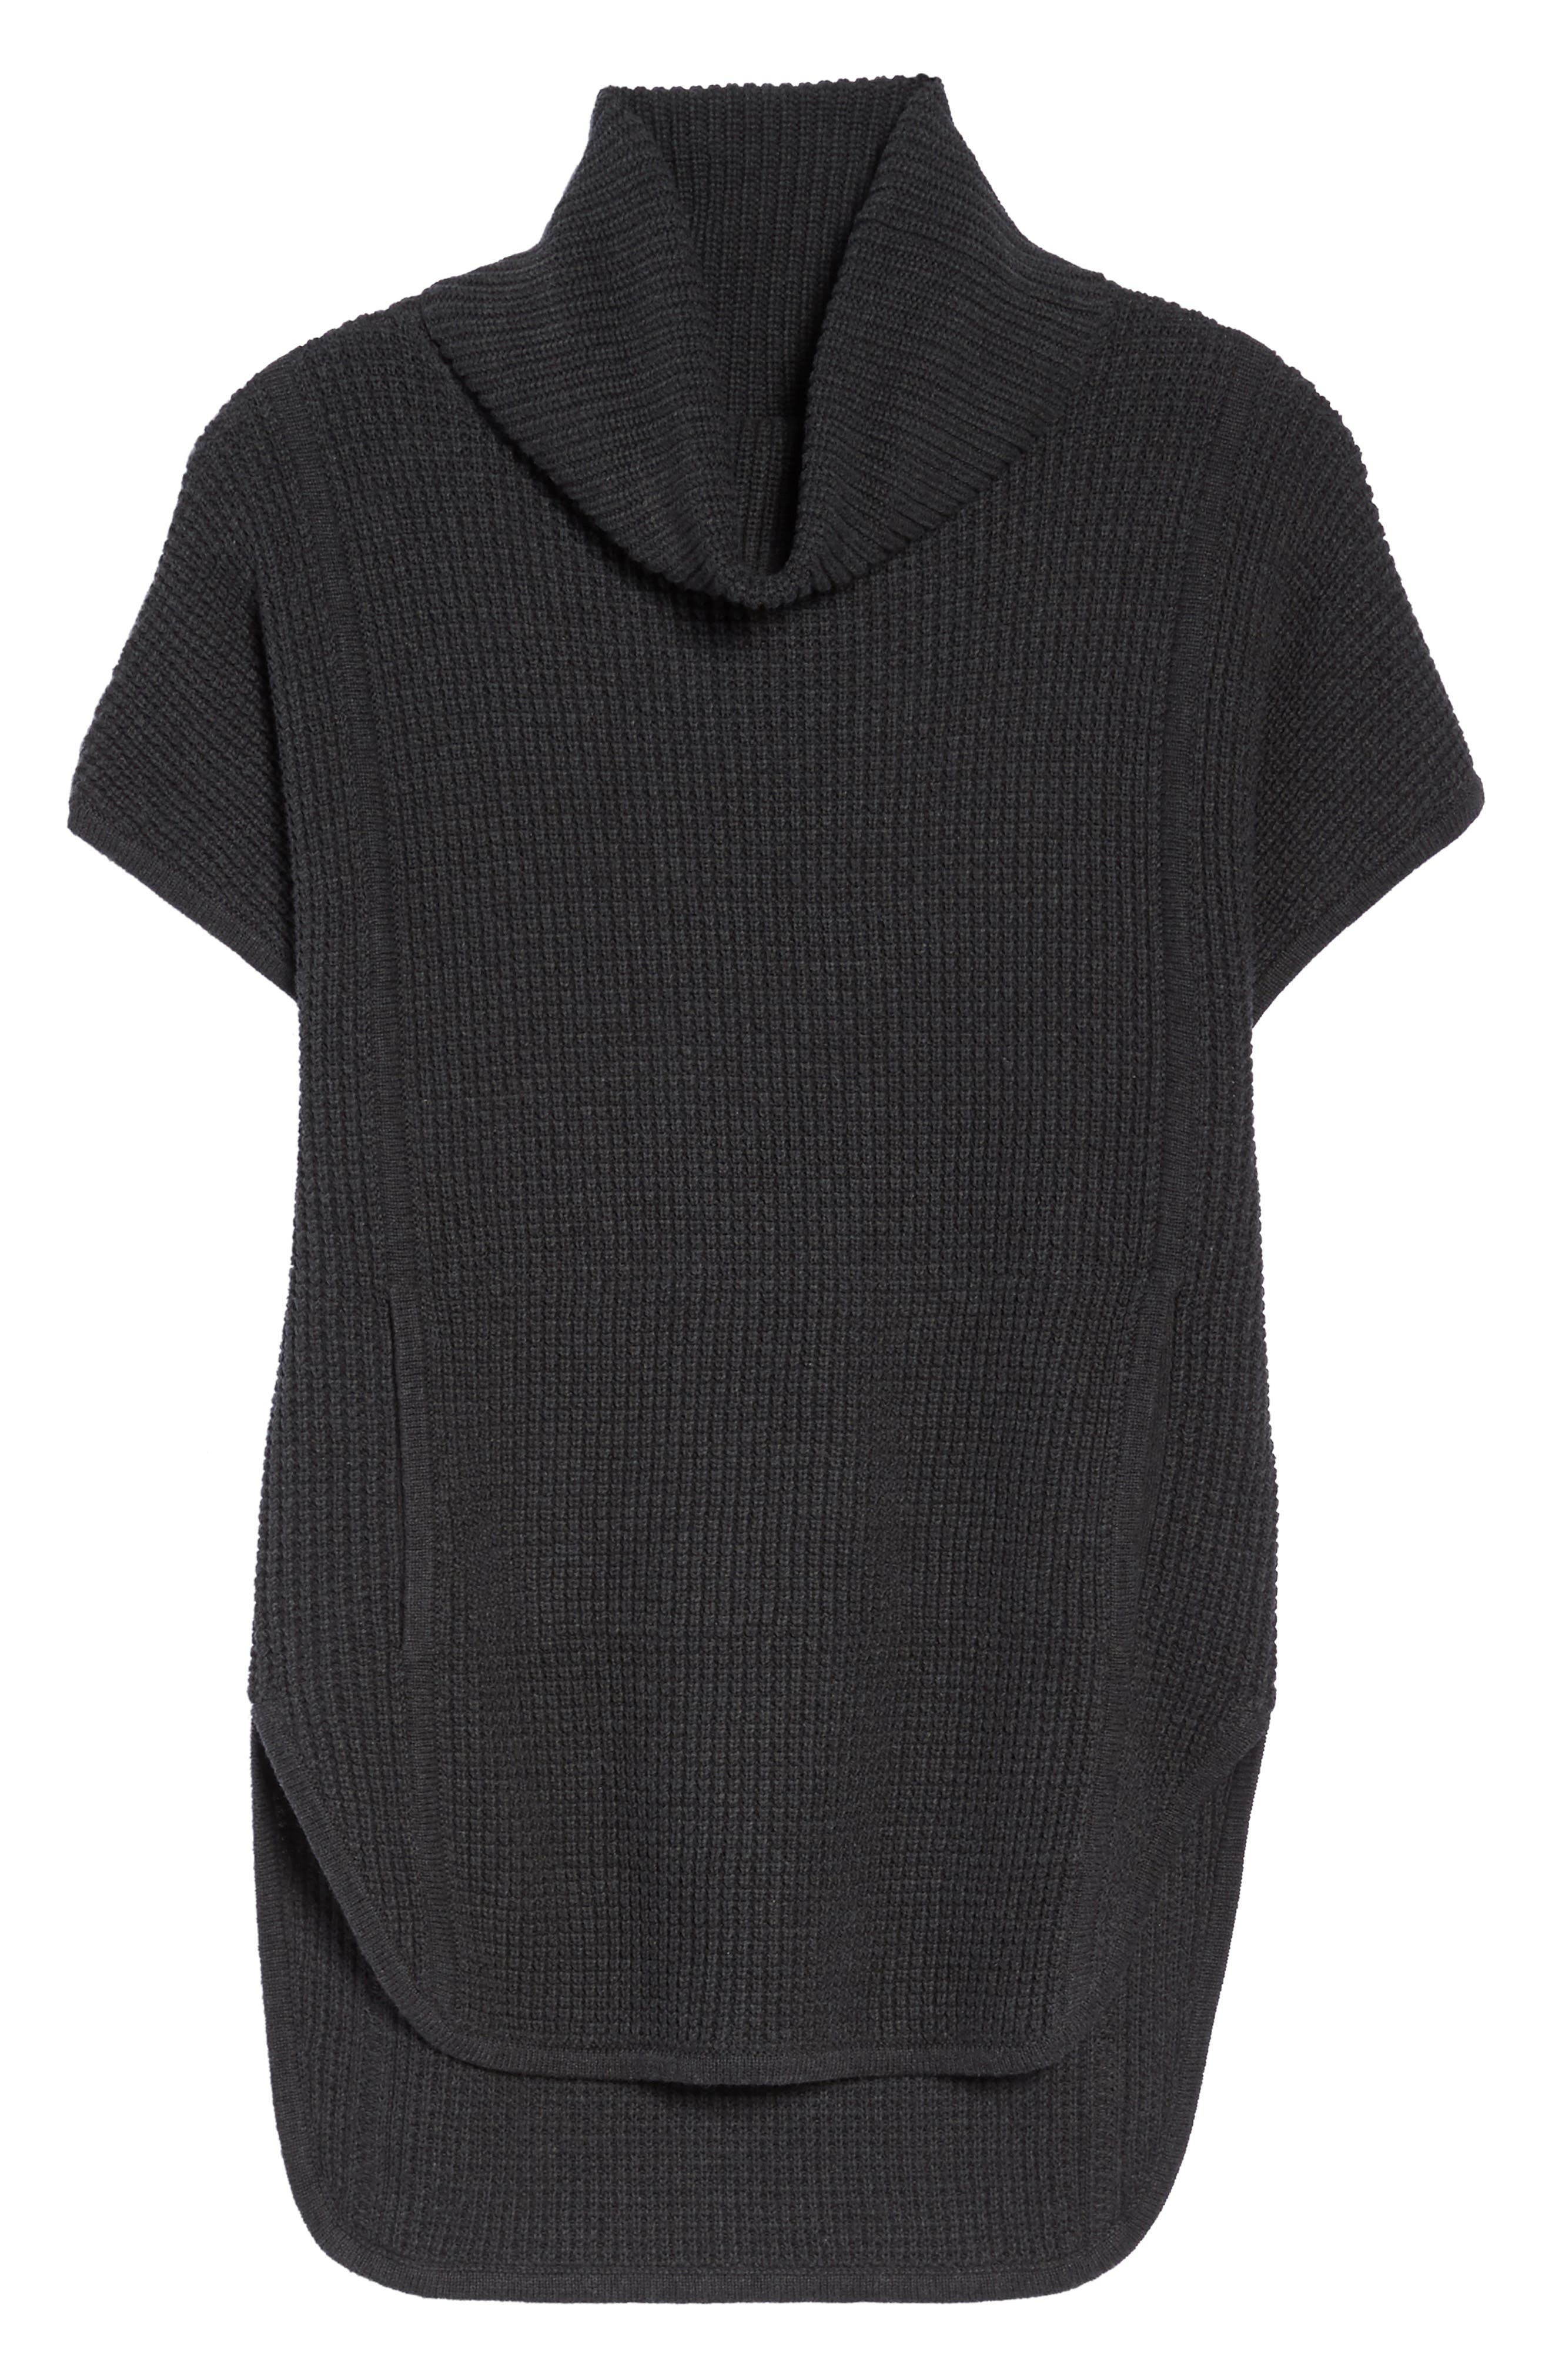 'Selby' Turtleneck Cotton Knit Pullover,                             Alternate thumbnail 6, color,                             001